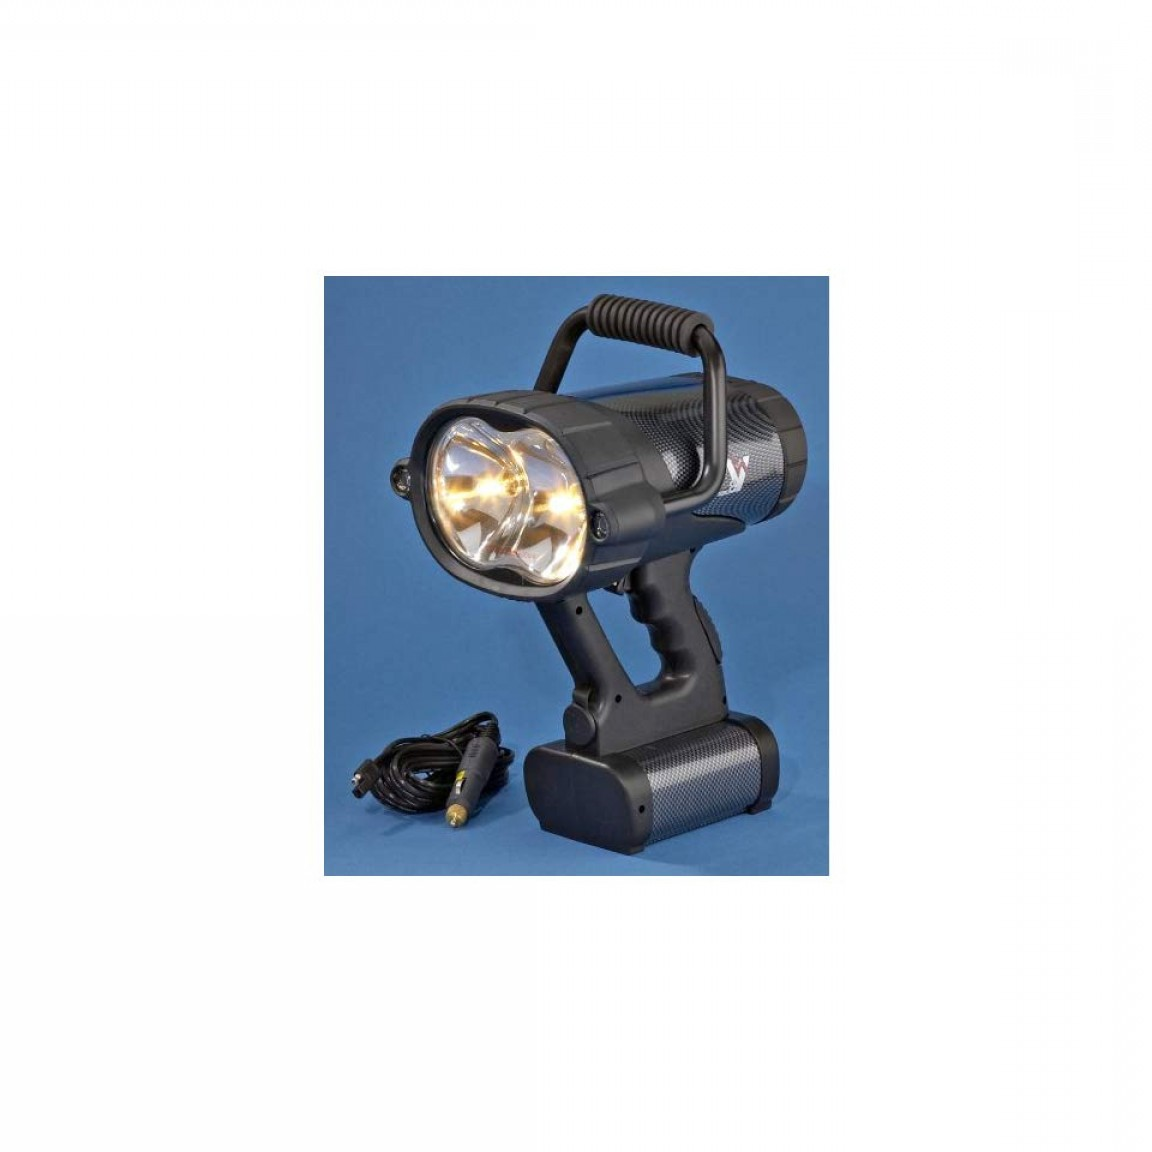 Vector Spotlight 3 Million: Vector Million Cp Spotlight Boating Spotlights Sports Amp Outdoors